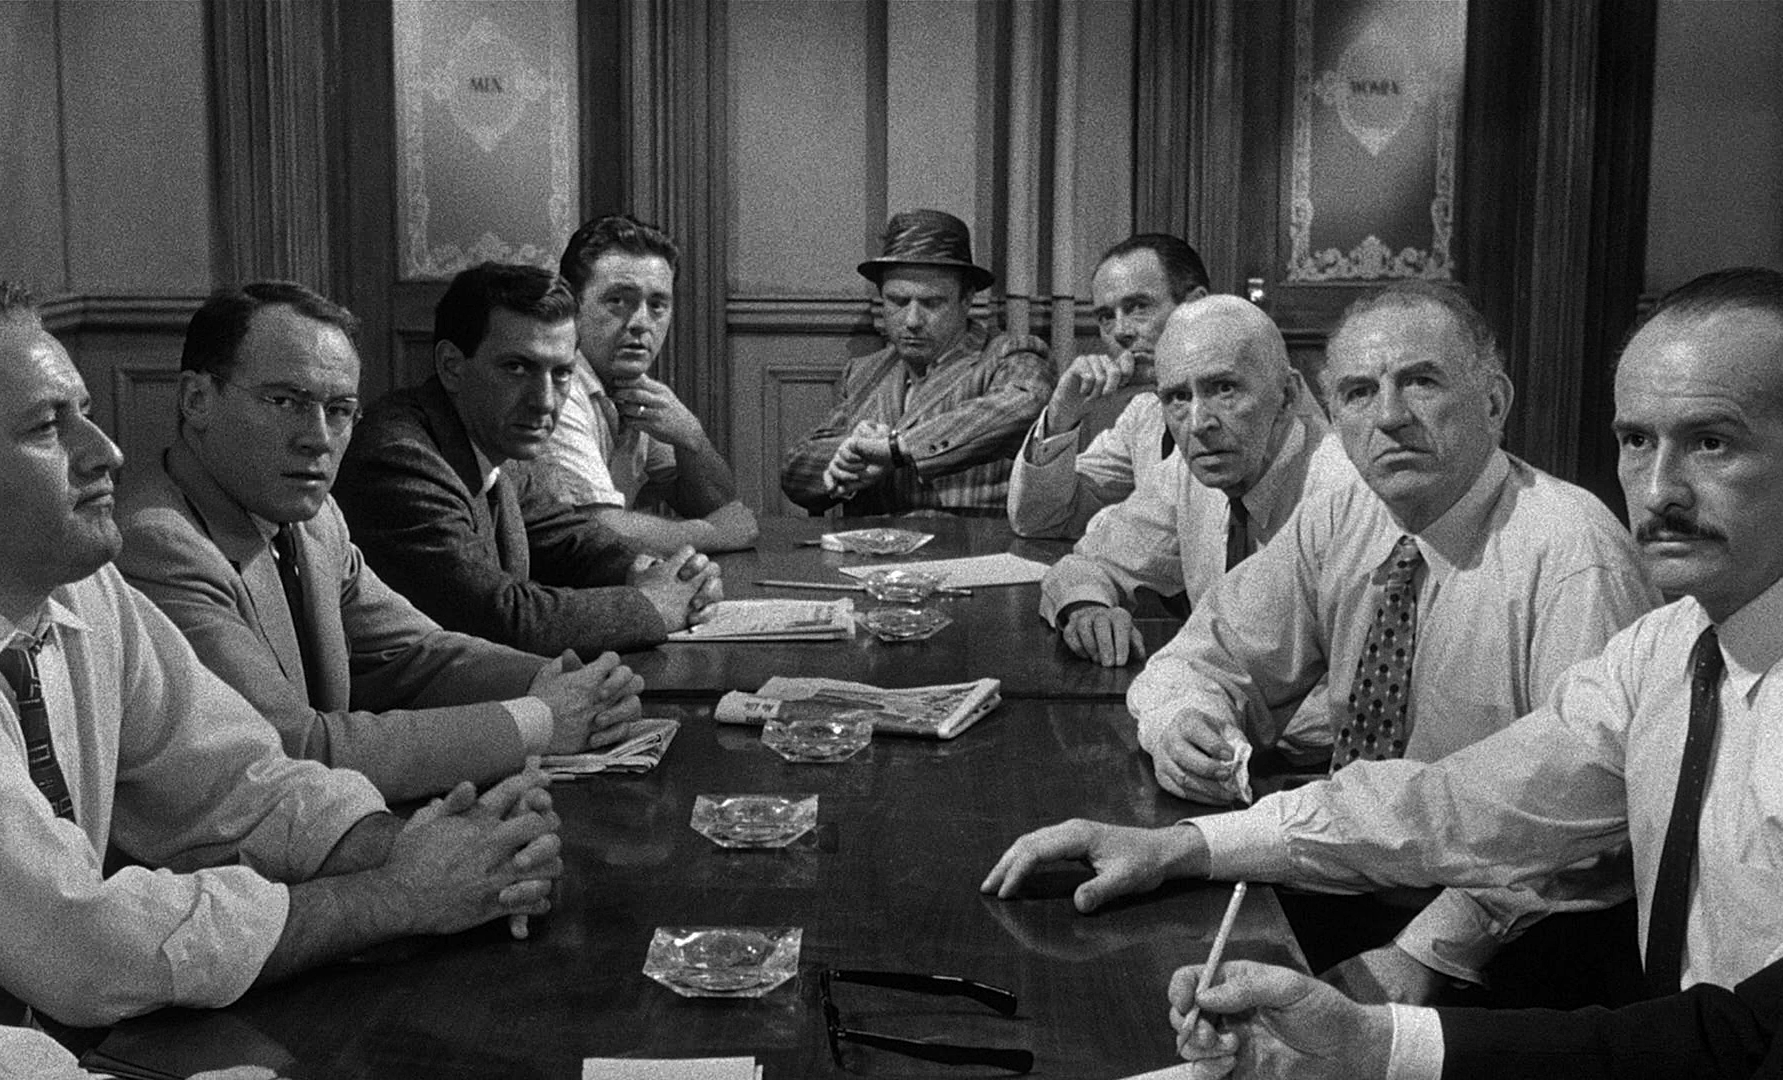 1783x1080 > 12 Angry Men Wallpapers